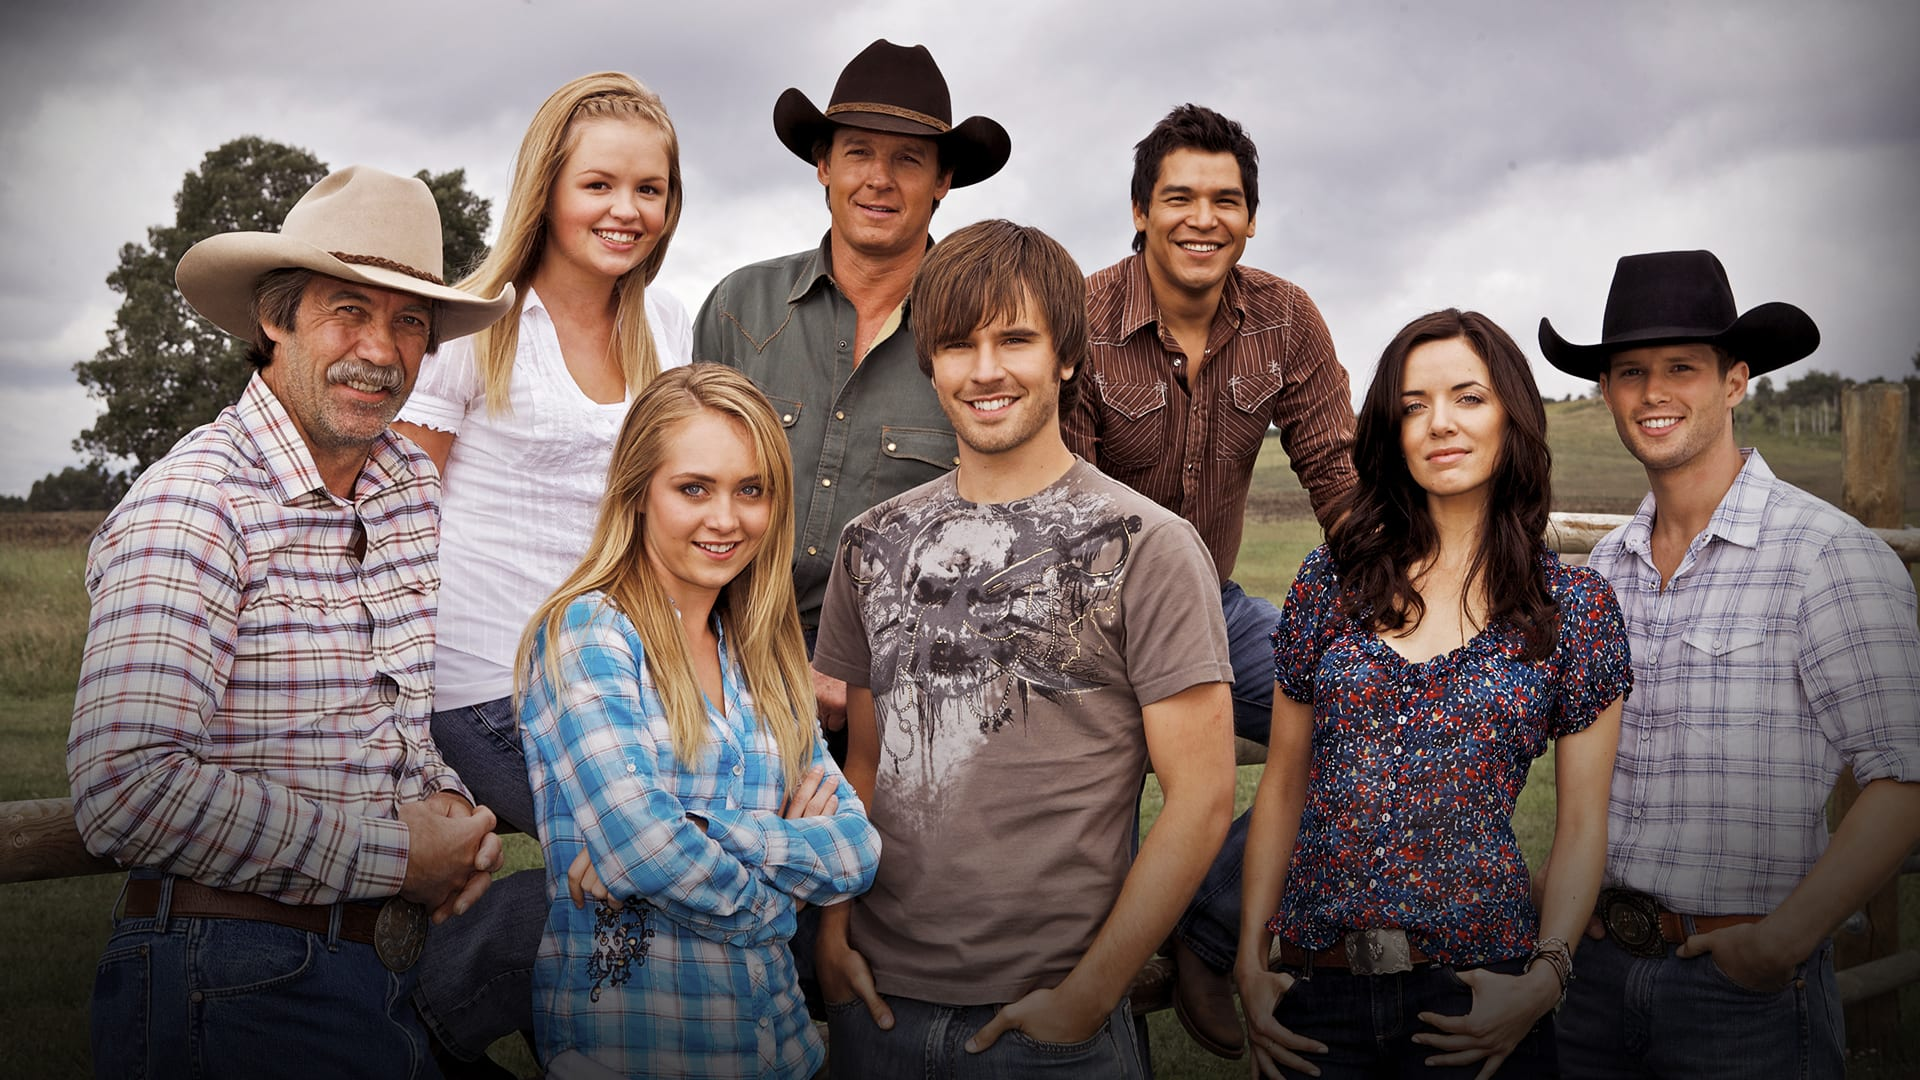 Top Shows Like Virgin River To Watch